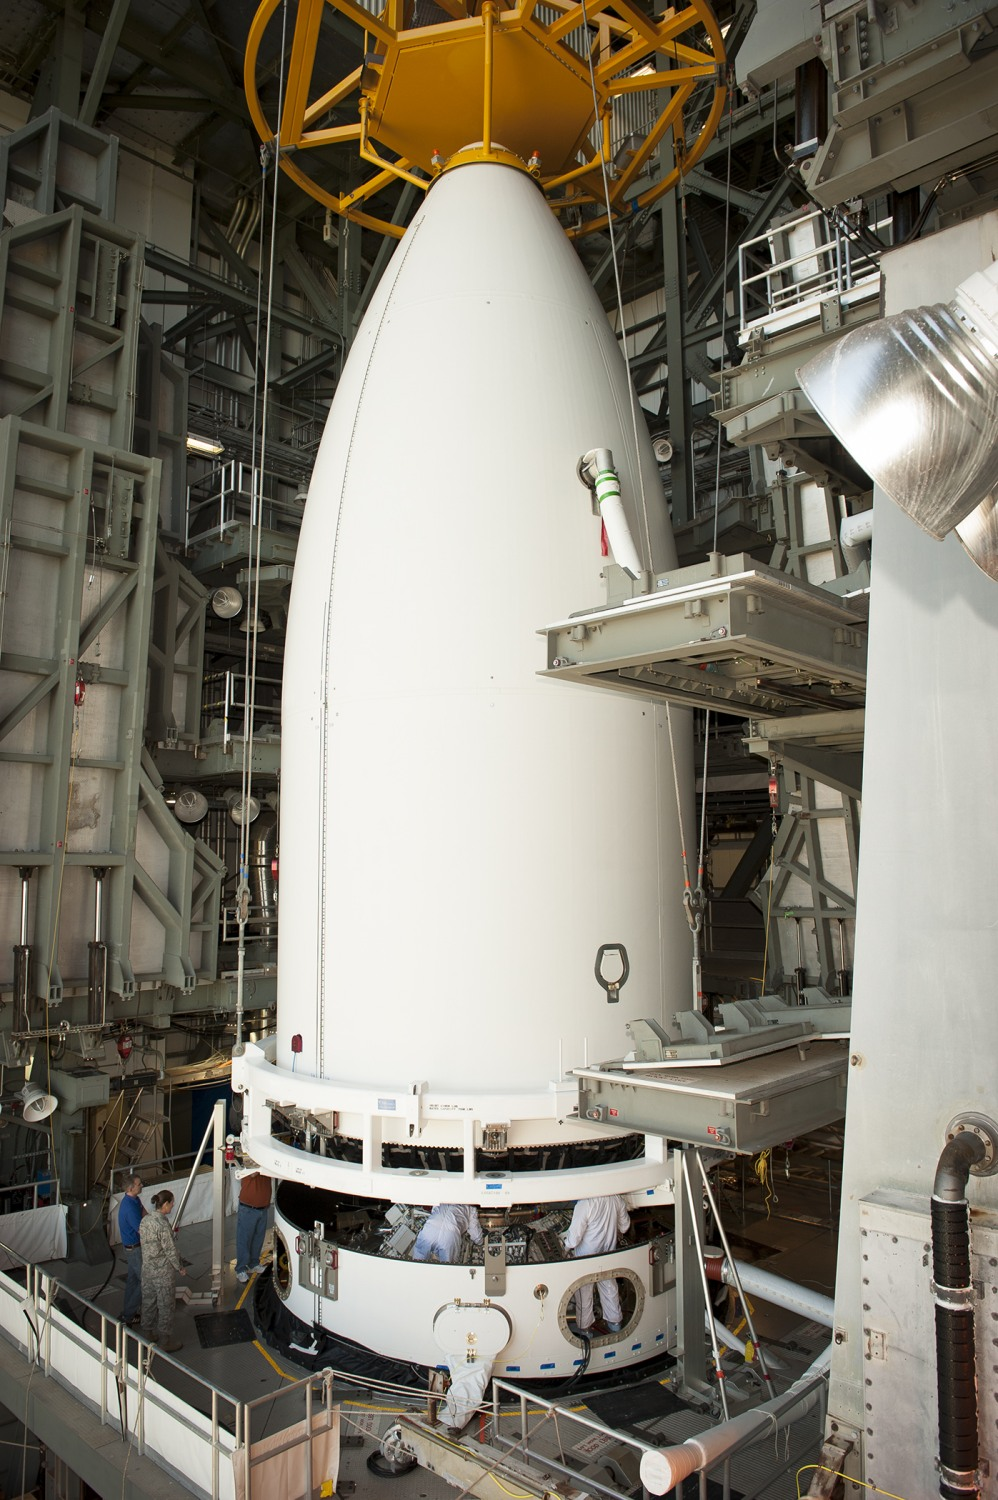 Payload fairing for AFSPC 5 mission United Launch Alliance Atlas V 501 rocket ULA photo posted on SpaceFlight Insider